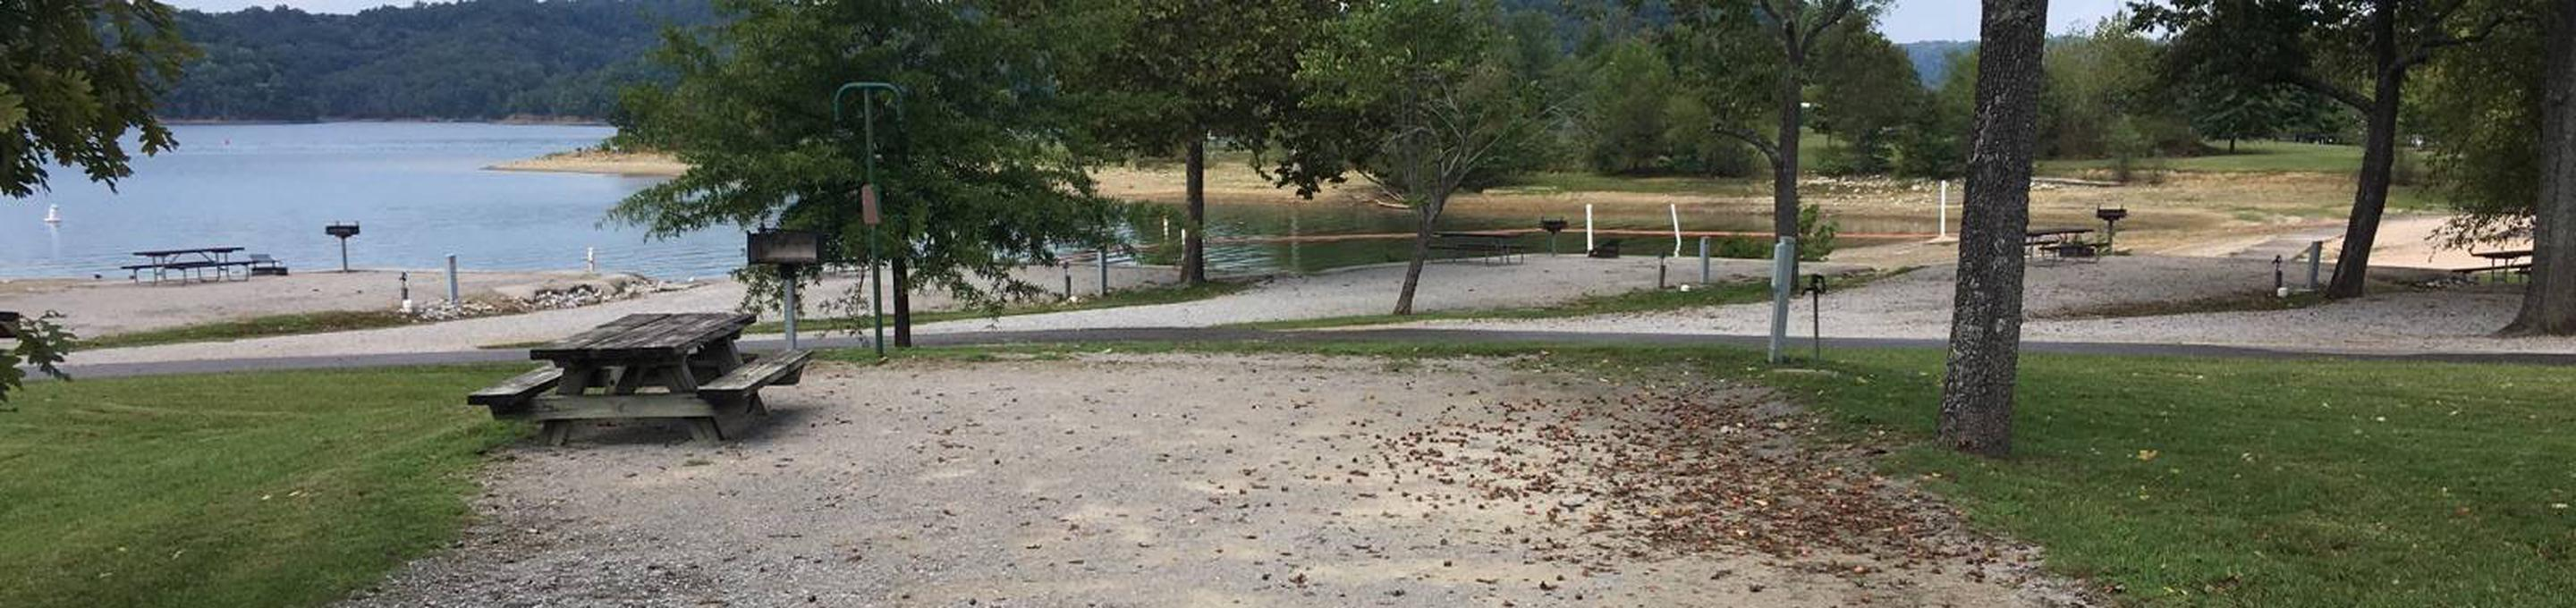 LILLYDALE CAMPGROUND SITE # 75